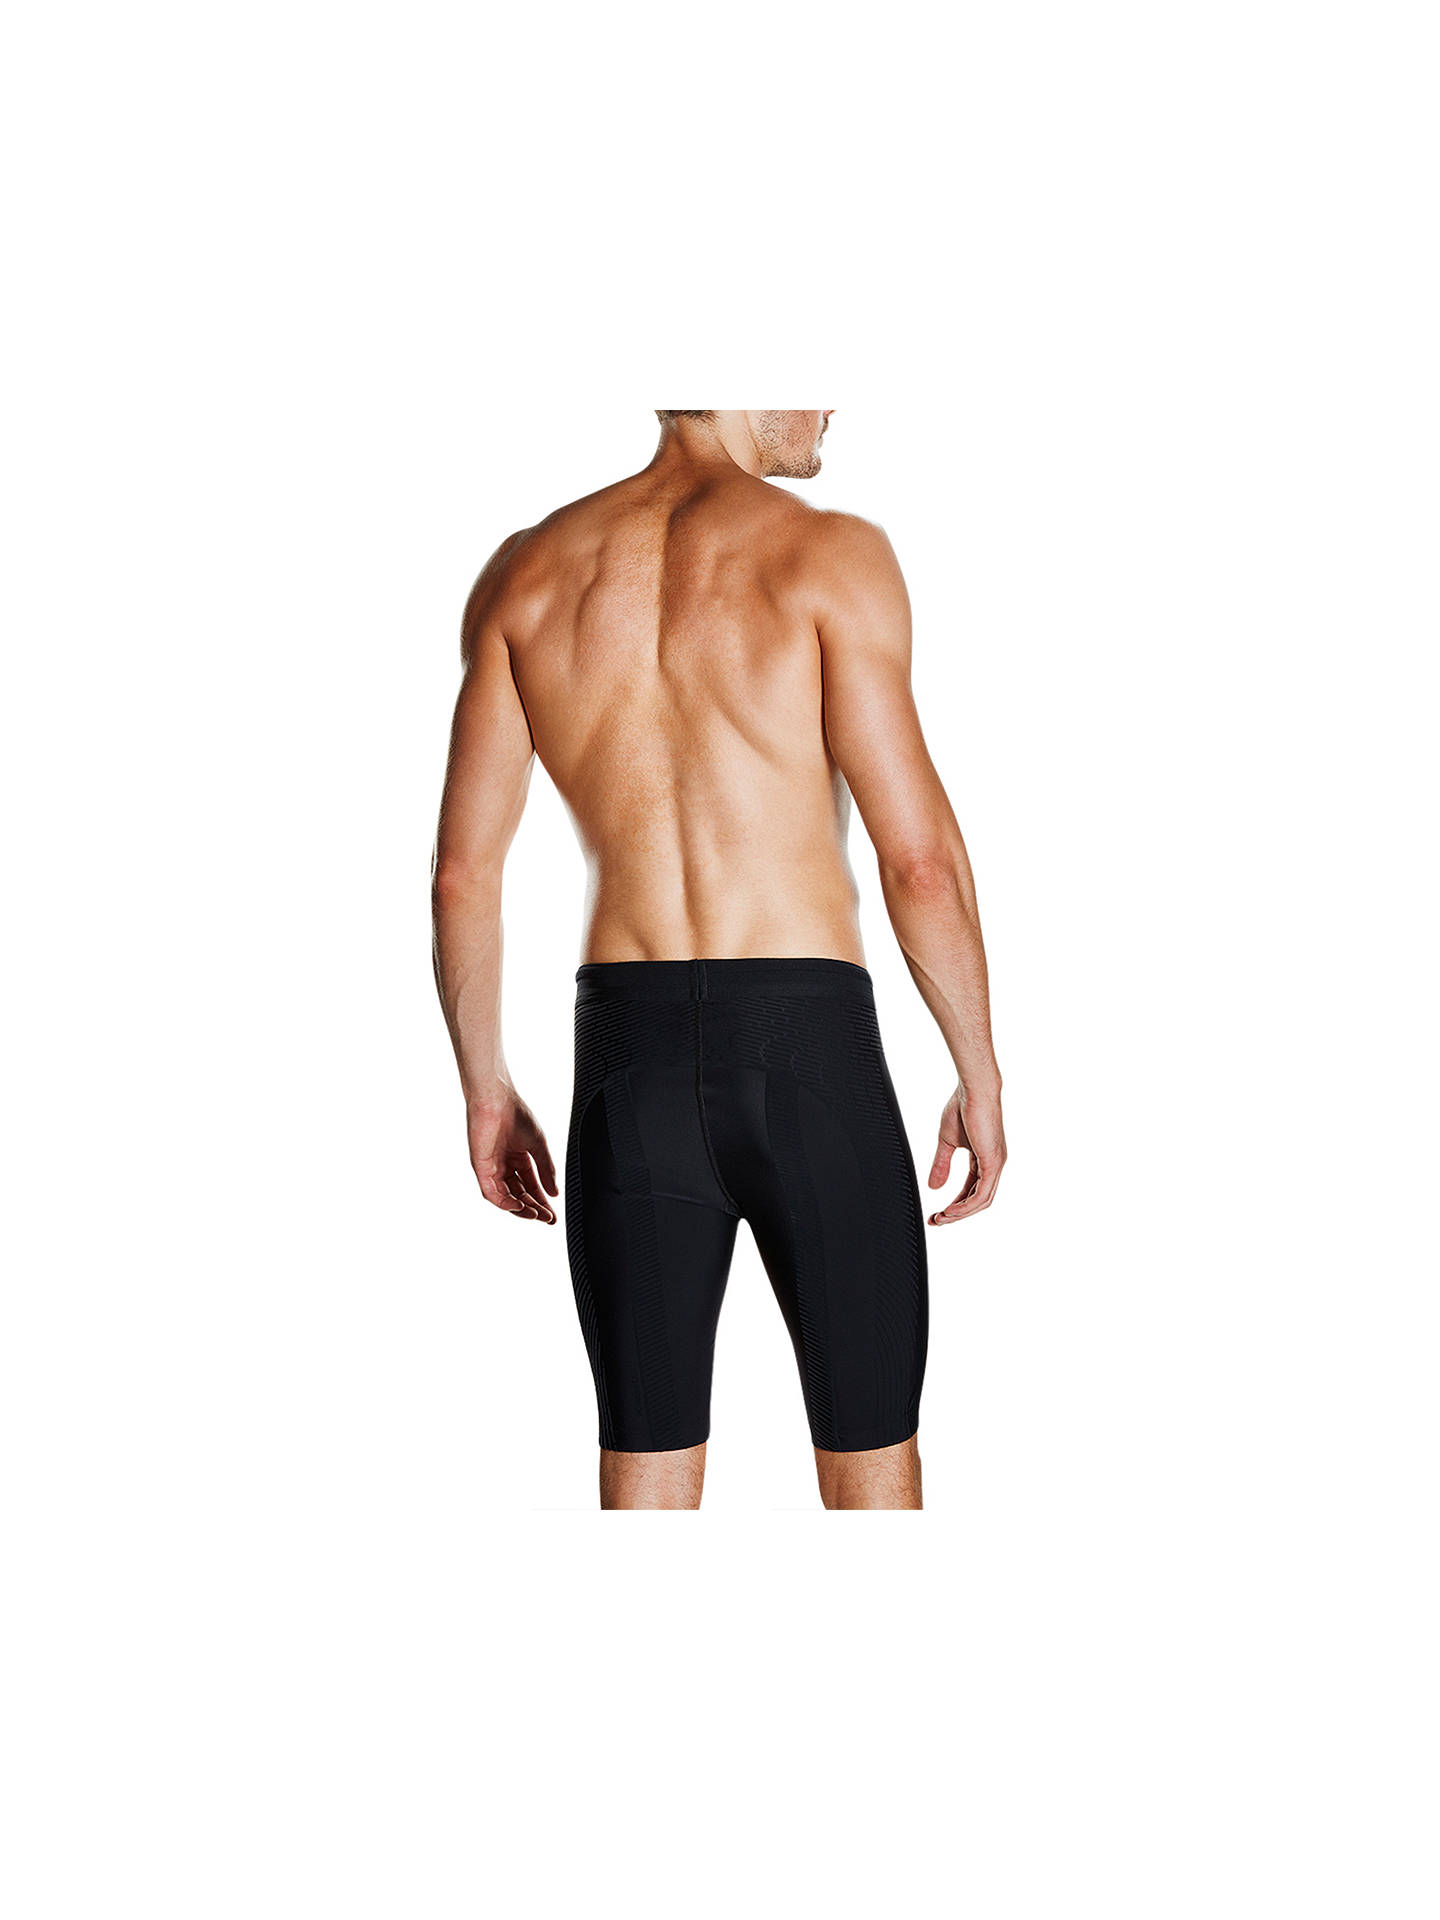 Buy Speedo Fit Powerform Pro Jammers Swimming Shorts, Black/Orange, 36 Online at johnlewis.com